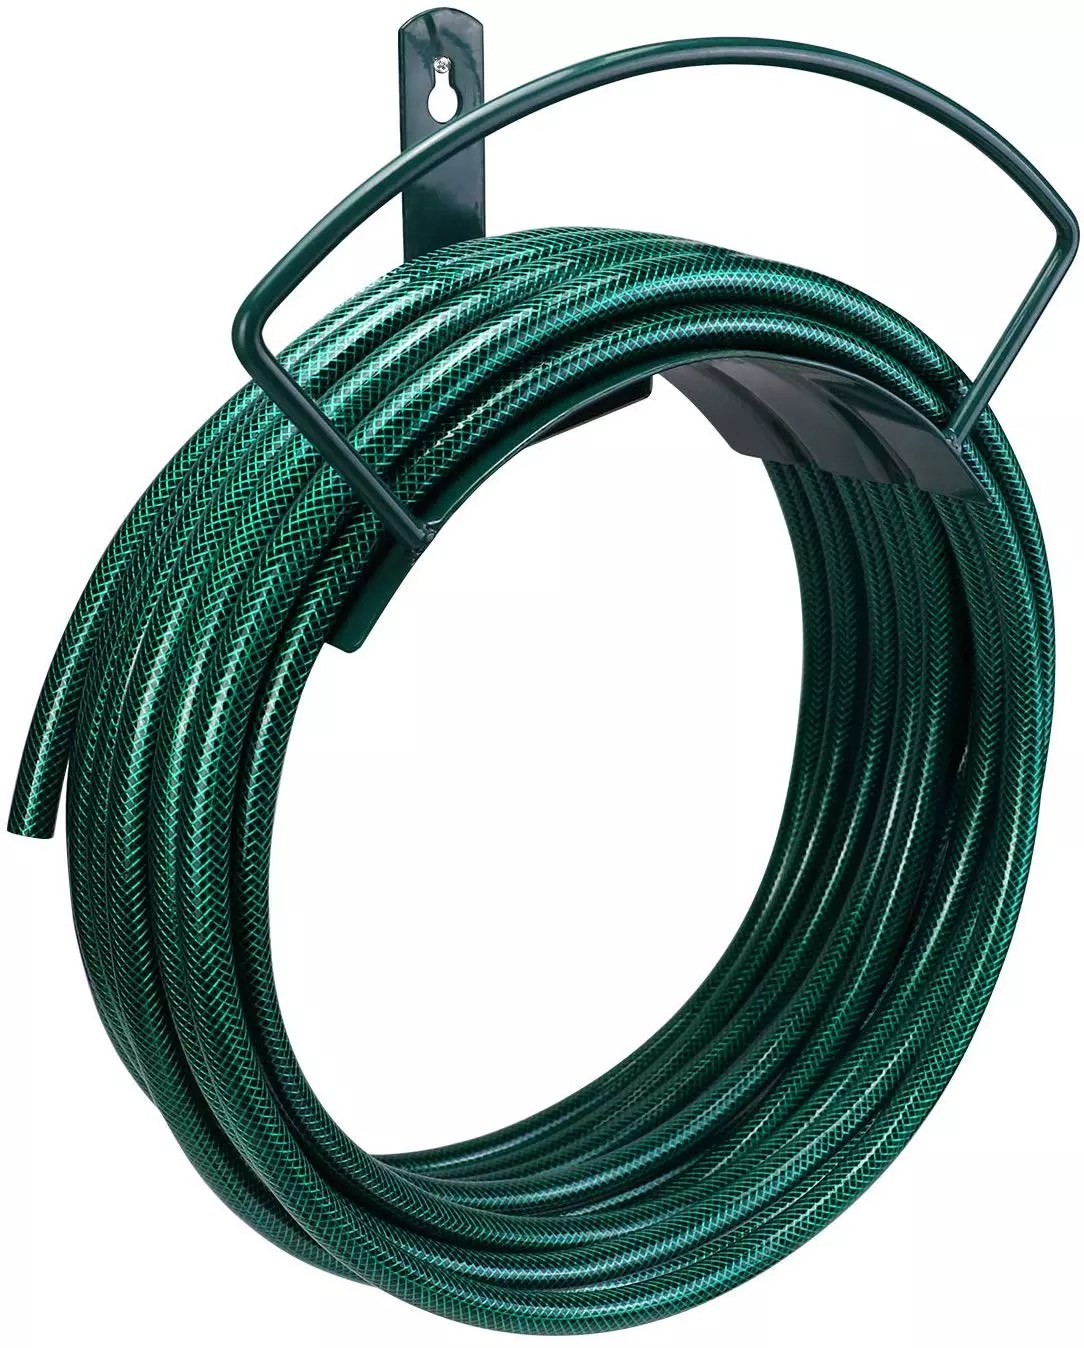 Deluxe Wall Mount Garden Hose Hanger Duty Metal Hose Holder Easily Holds 125 3 4 Hose Solid Steel Extra Bracing Forest Green Buy Metal Hose Hanger Garden Hose Holder Metal Holder Product On Alibaba Com